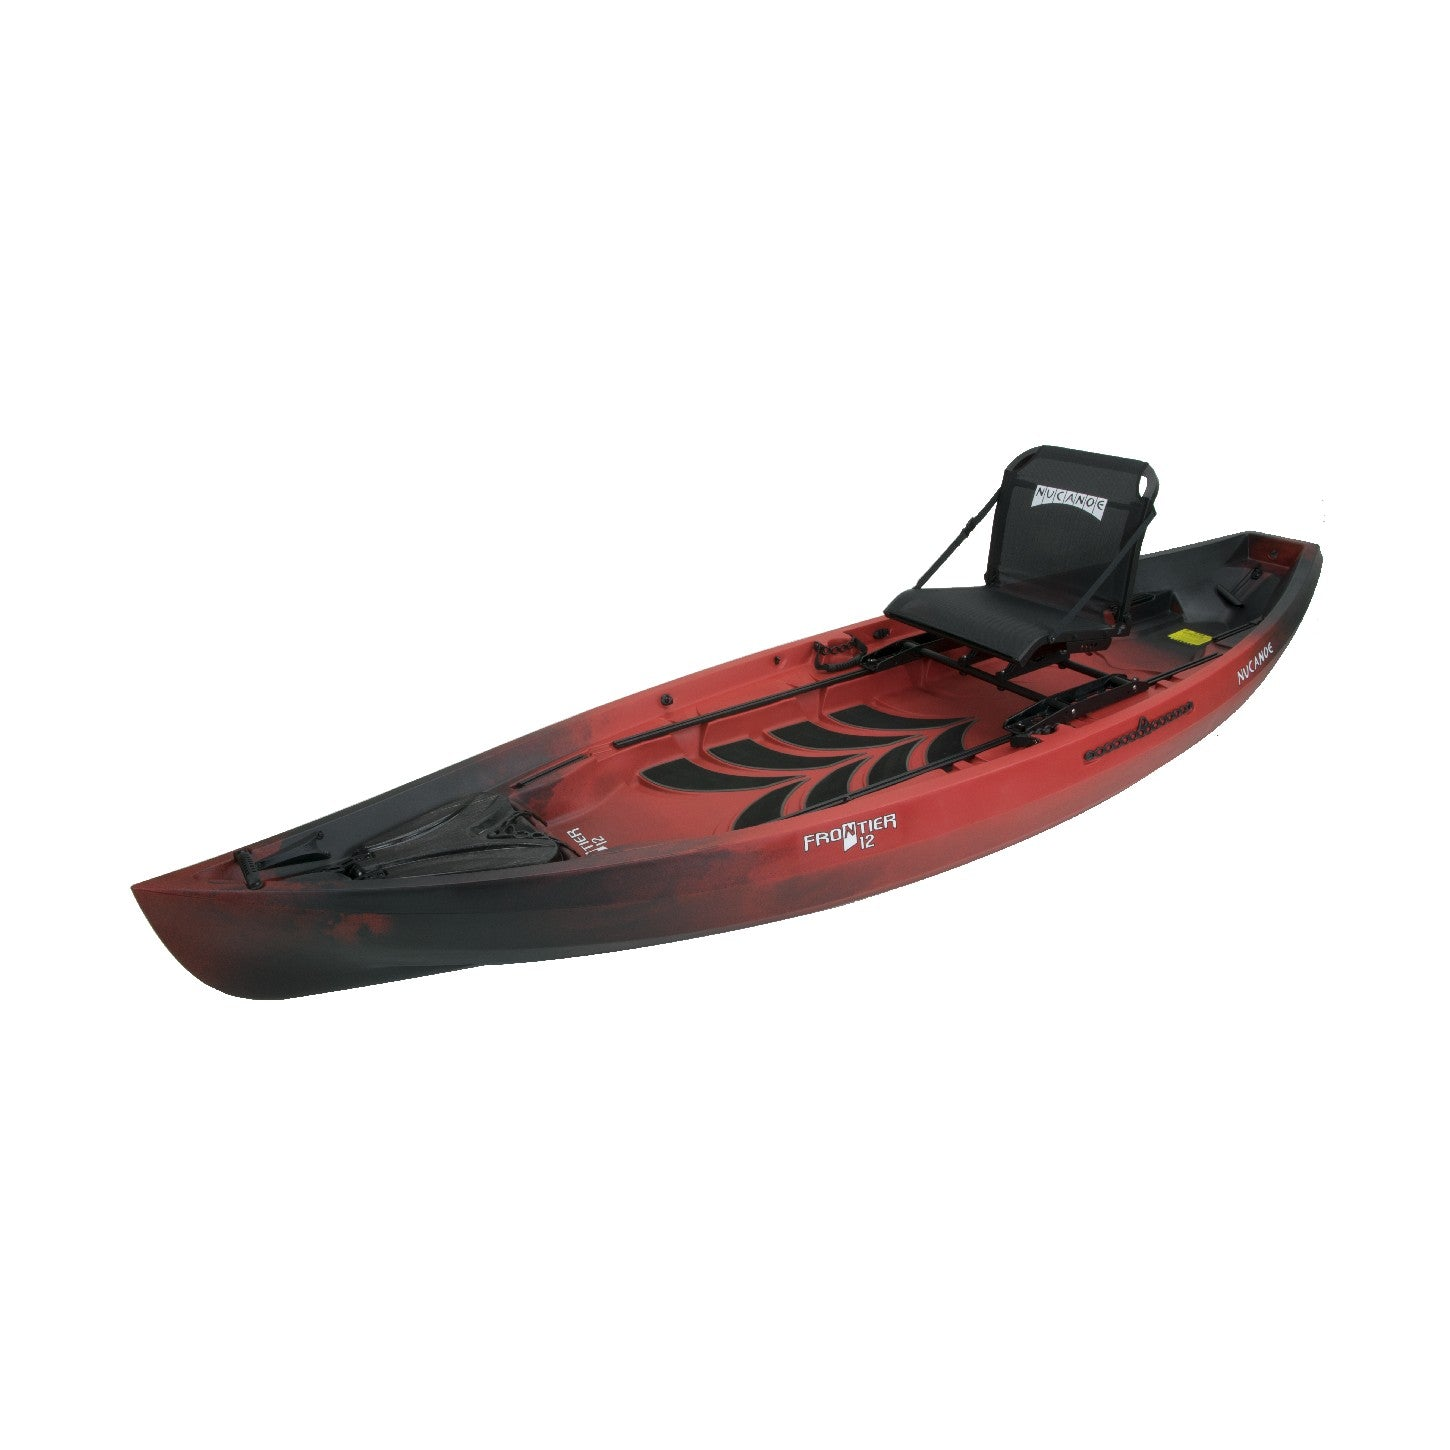 NuCanoe Frontier 12 Fishing Kayak 2020 | Bulldog Red - Kayak Creek